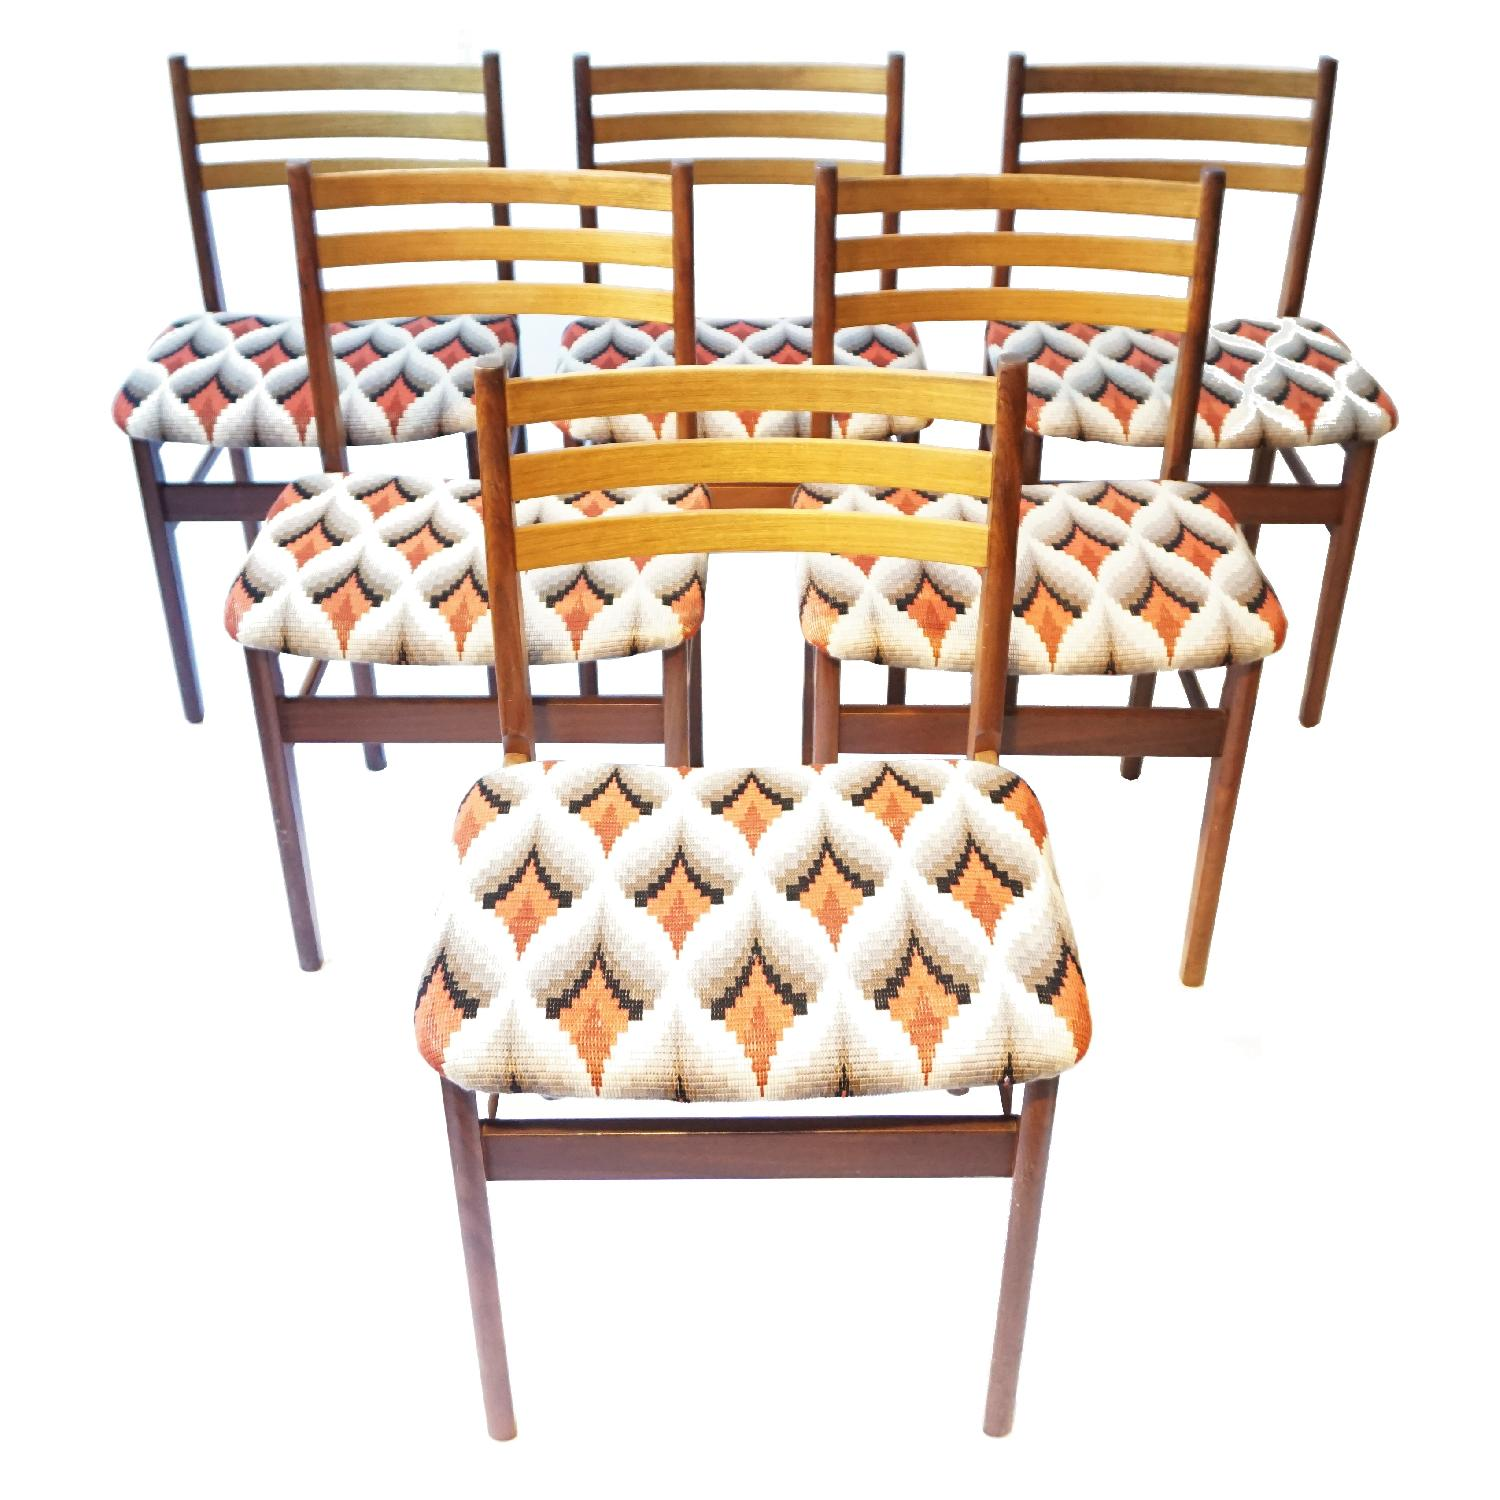 Vintage Danish Furniture Makers Chairs - image-0